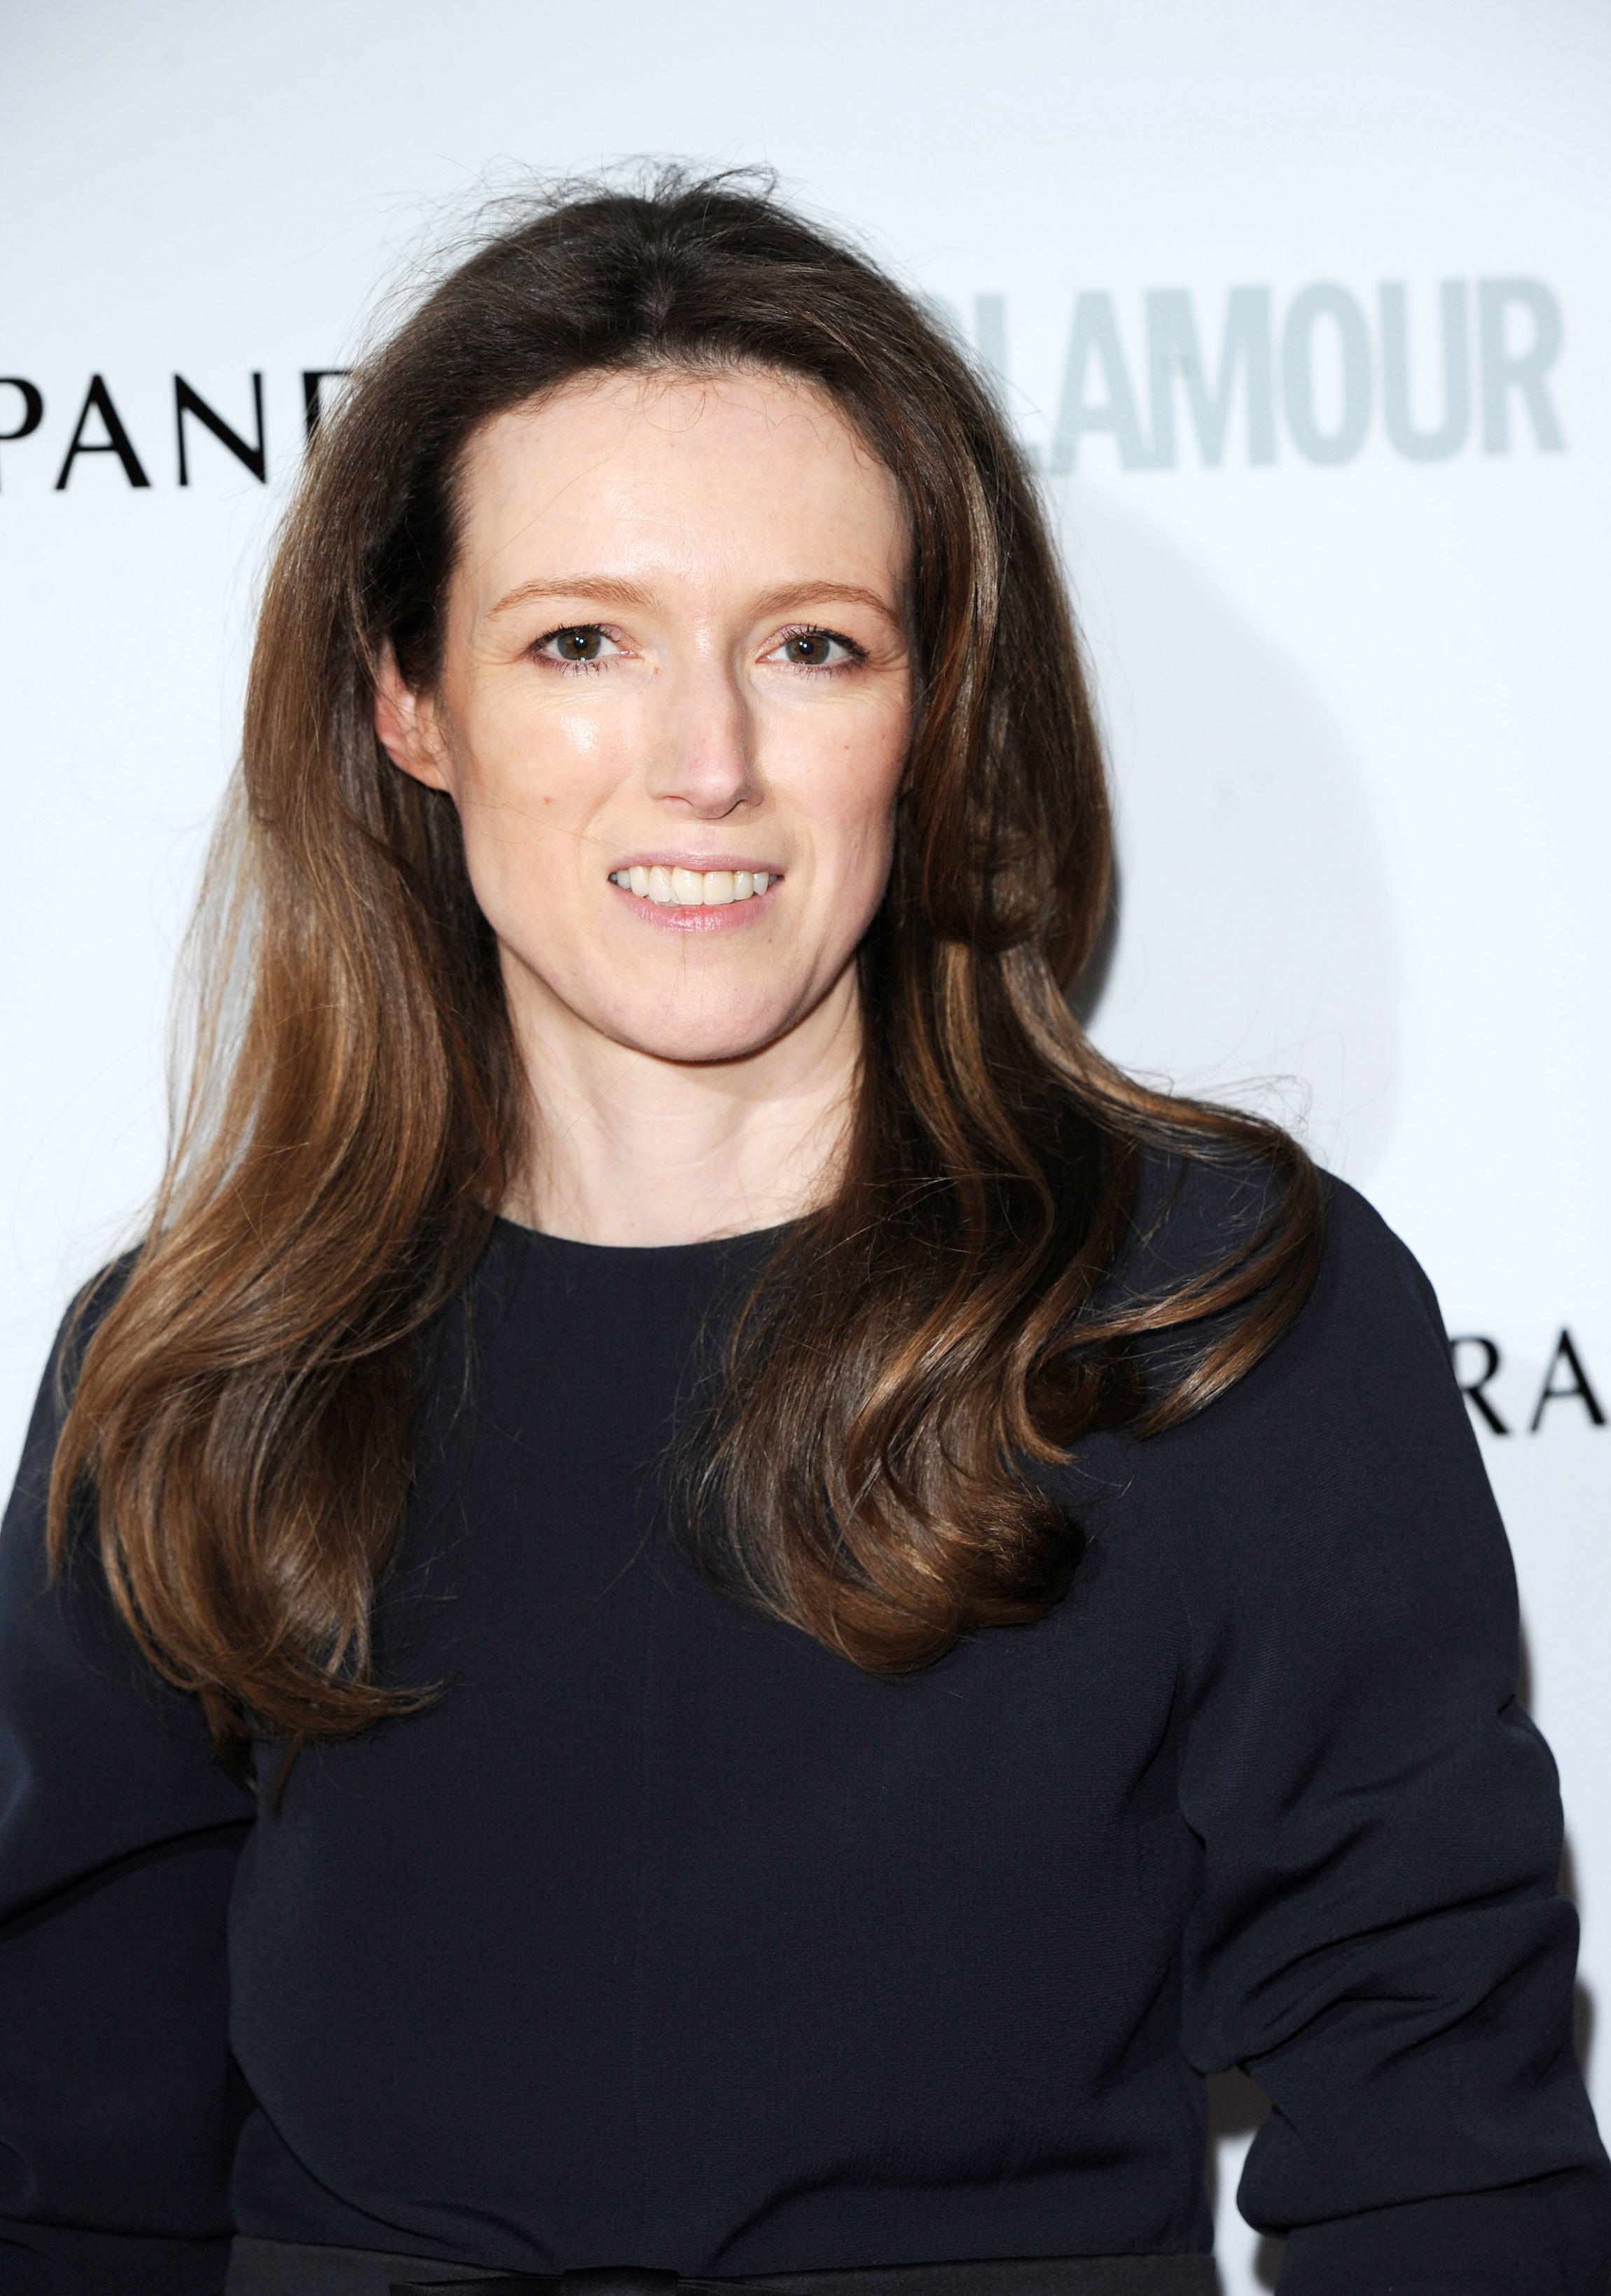 04.JUNE.2013. LONDON  CLARE WAIGHT KELLER ATTENDS THE 2013 GLAMOUR AWARDS IN BERKLEY SQUARE.